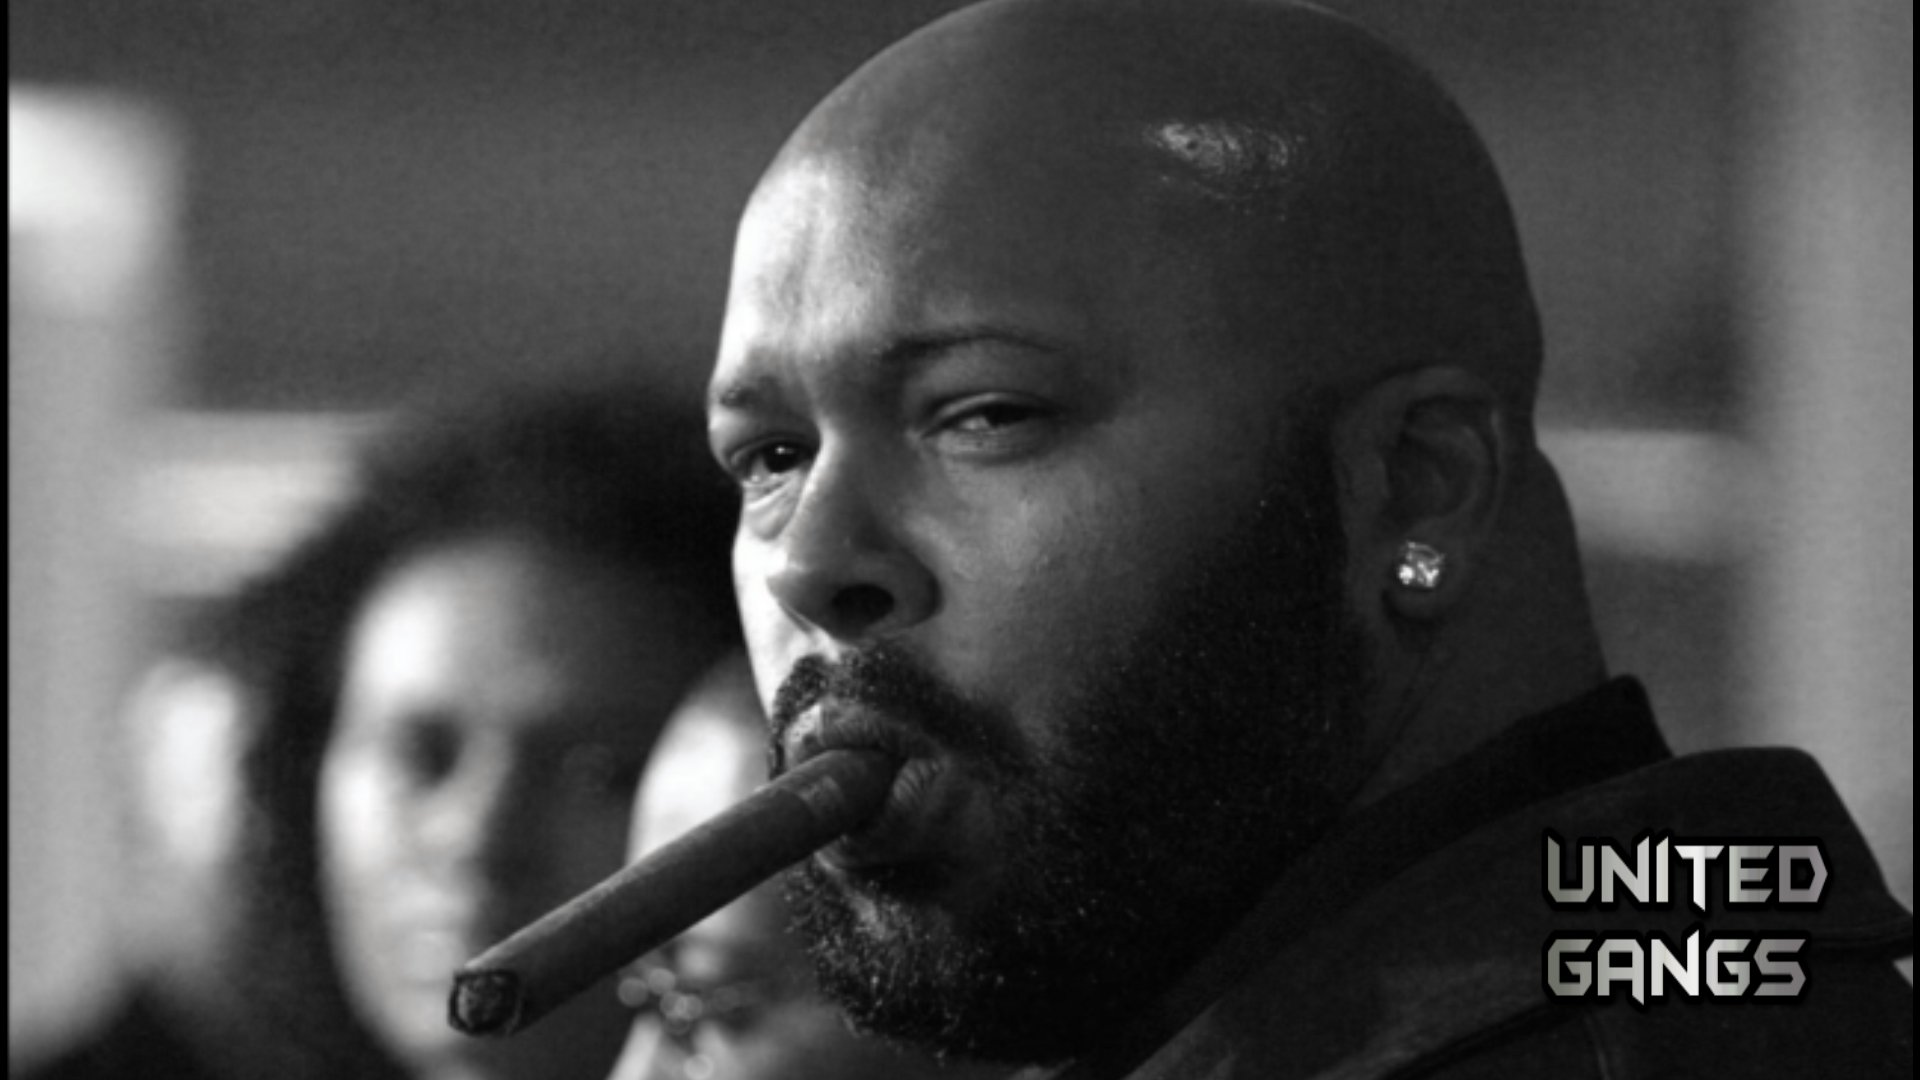 Marion Suge Knight Compton Californië 19 april 1965 is een Amerikaanse muziekproducent Hij is de oprichter van het beroemde hiphopplatenlabel Death Row